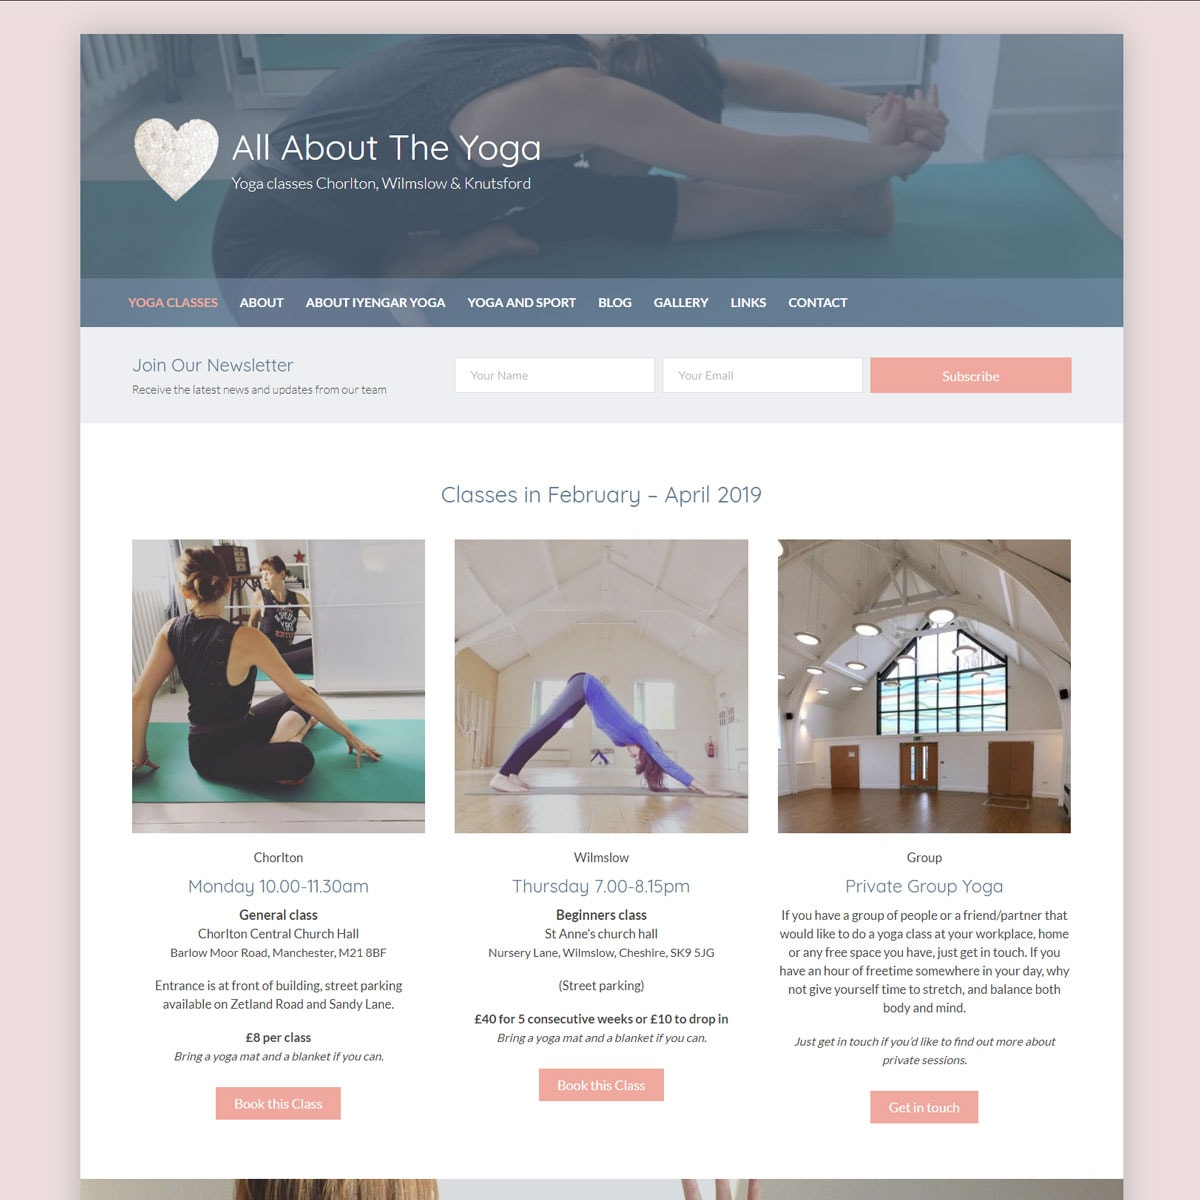 allabouttheyoga